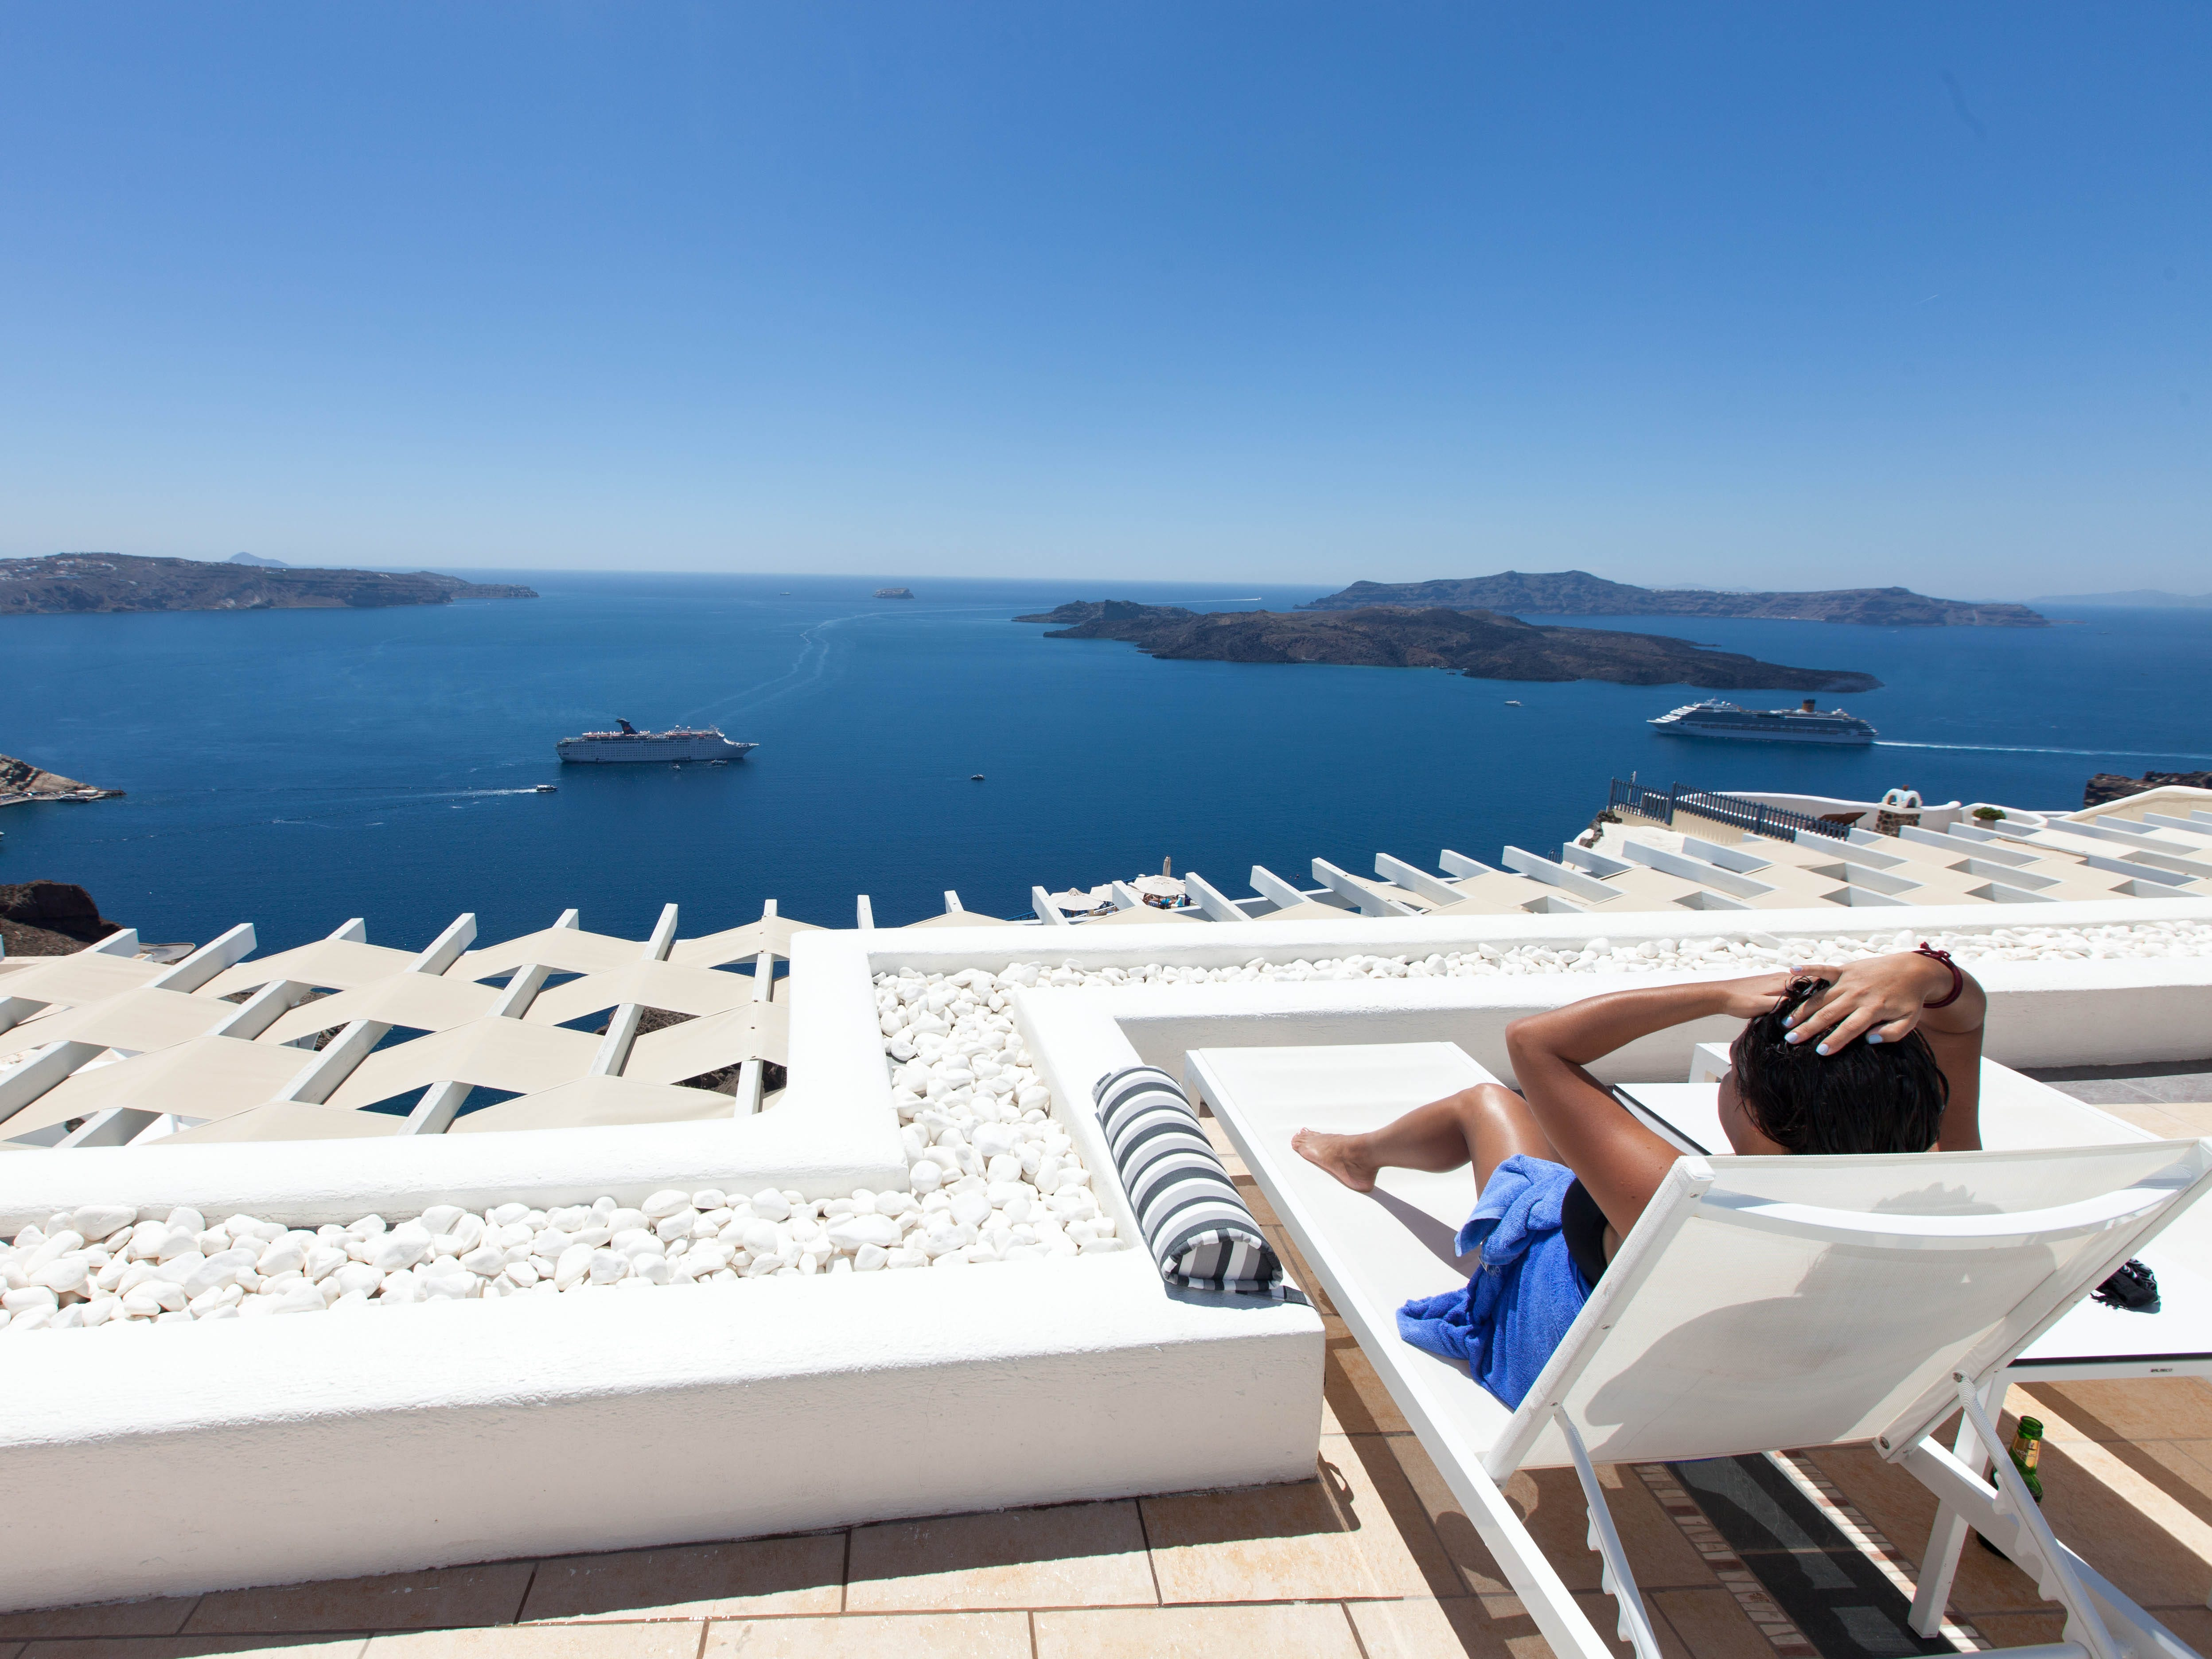 Lilium Villas Santorini: Overlooking the Aegean Sea, this boutique luxury hotel cranks up the romance factor. A gorgeous swimming pool and sun deck promise memorable moments, while the on-site spa is perfect antidote to the stress of wedding planning. The spacious rooms and black-and-white lounge and bar overlooking the water are sure impress, too, but the sunset views steal the show. Just keep in mind that a car or shuttle is necessary for exploring the rest of the island, as the hotel is a bit off the beaten path (shuttle service to the town of Fira is included in the rate, as is parking and breakfast.)